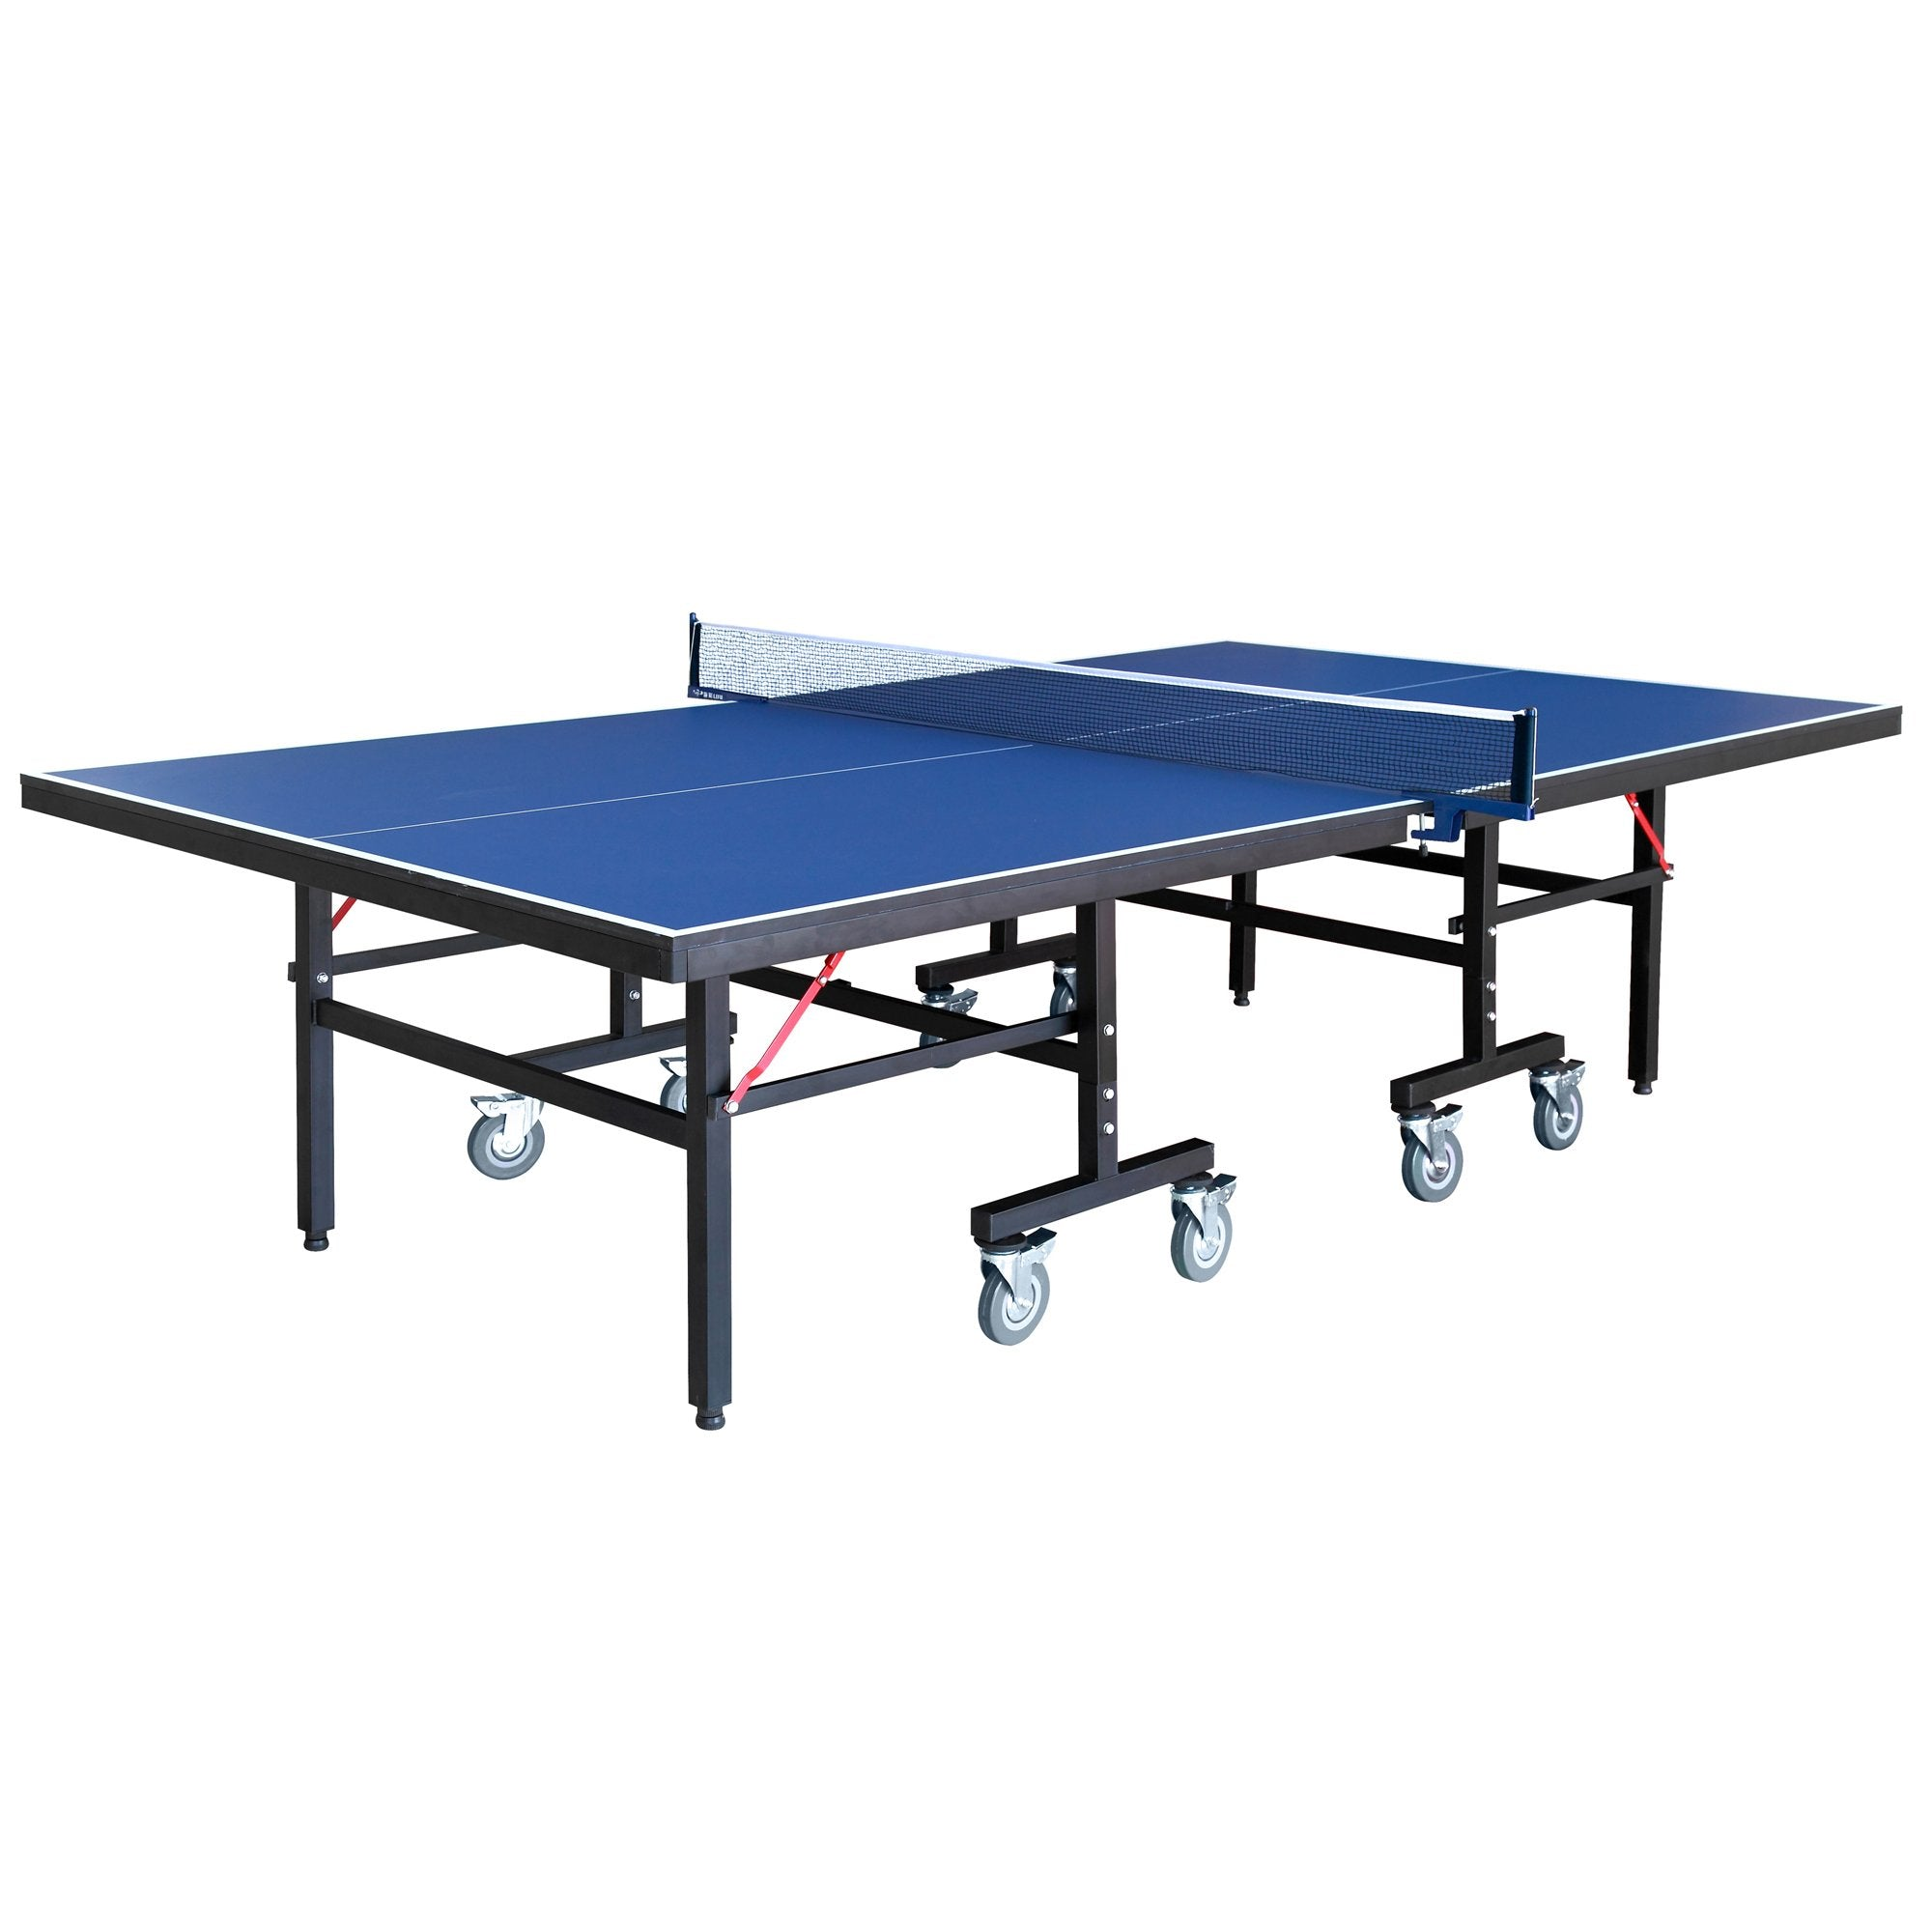 Hathaway Back Stop 9ft Folding Ping Pong Table - Gaming Blaze